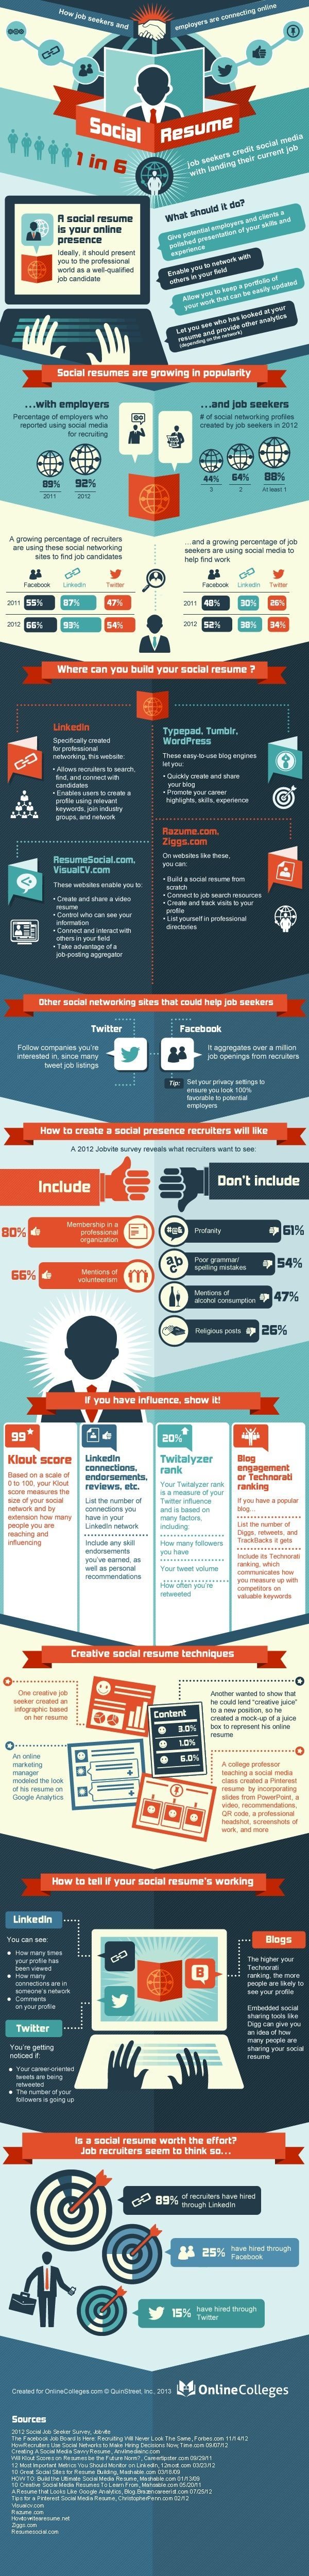 Social Resume #infographic